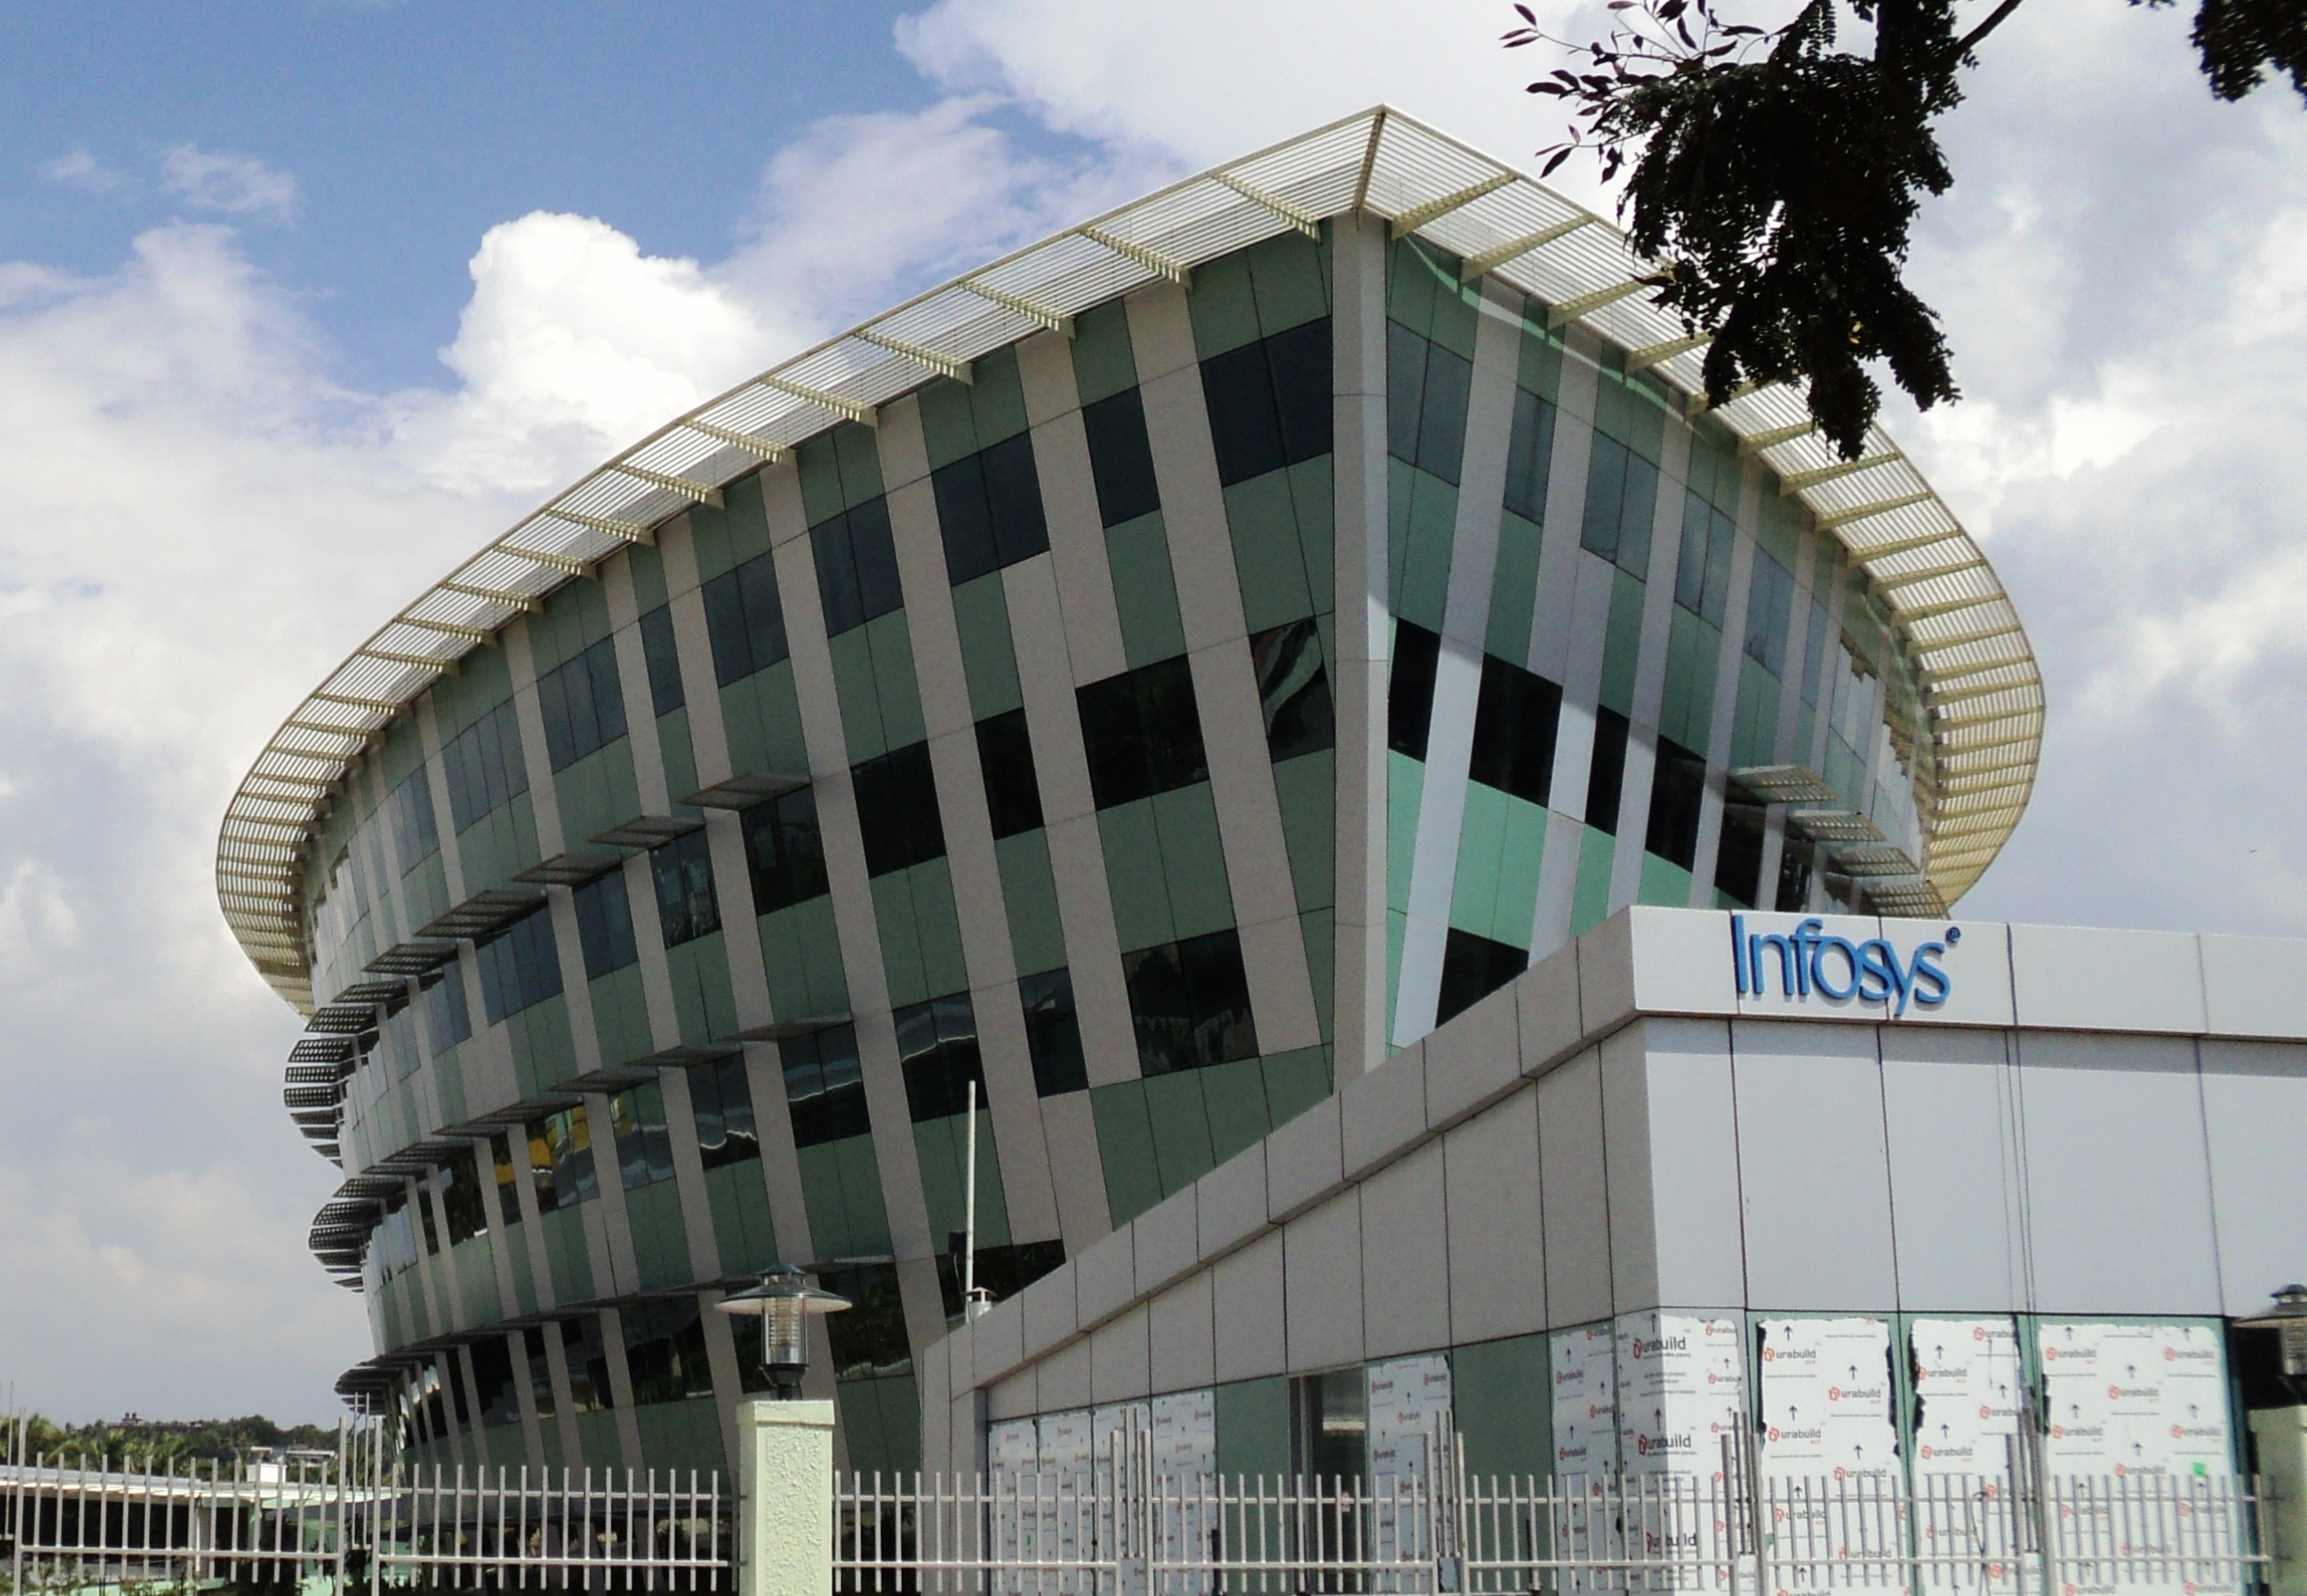 infosys in india building a software giant in a corrupt environment How to corrupt a file for school building a software giant in acorrupt environment infosys in india: building a software giant in acorrupt environment.